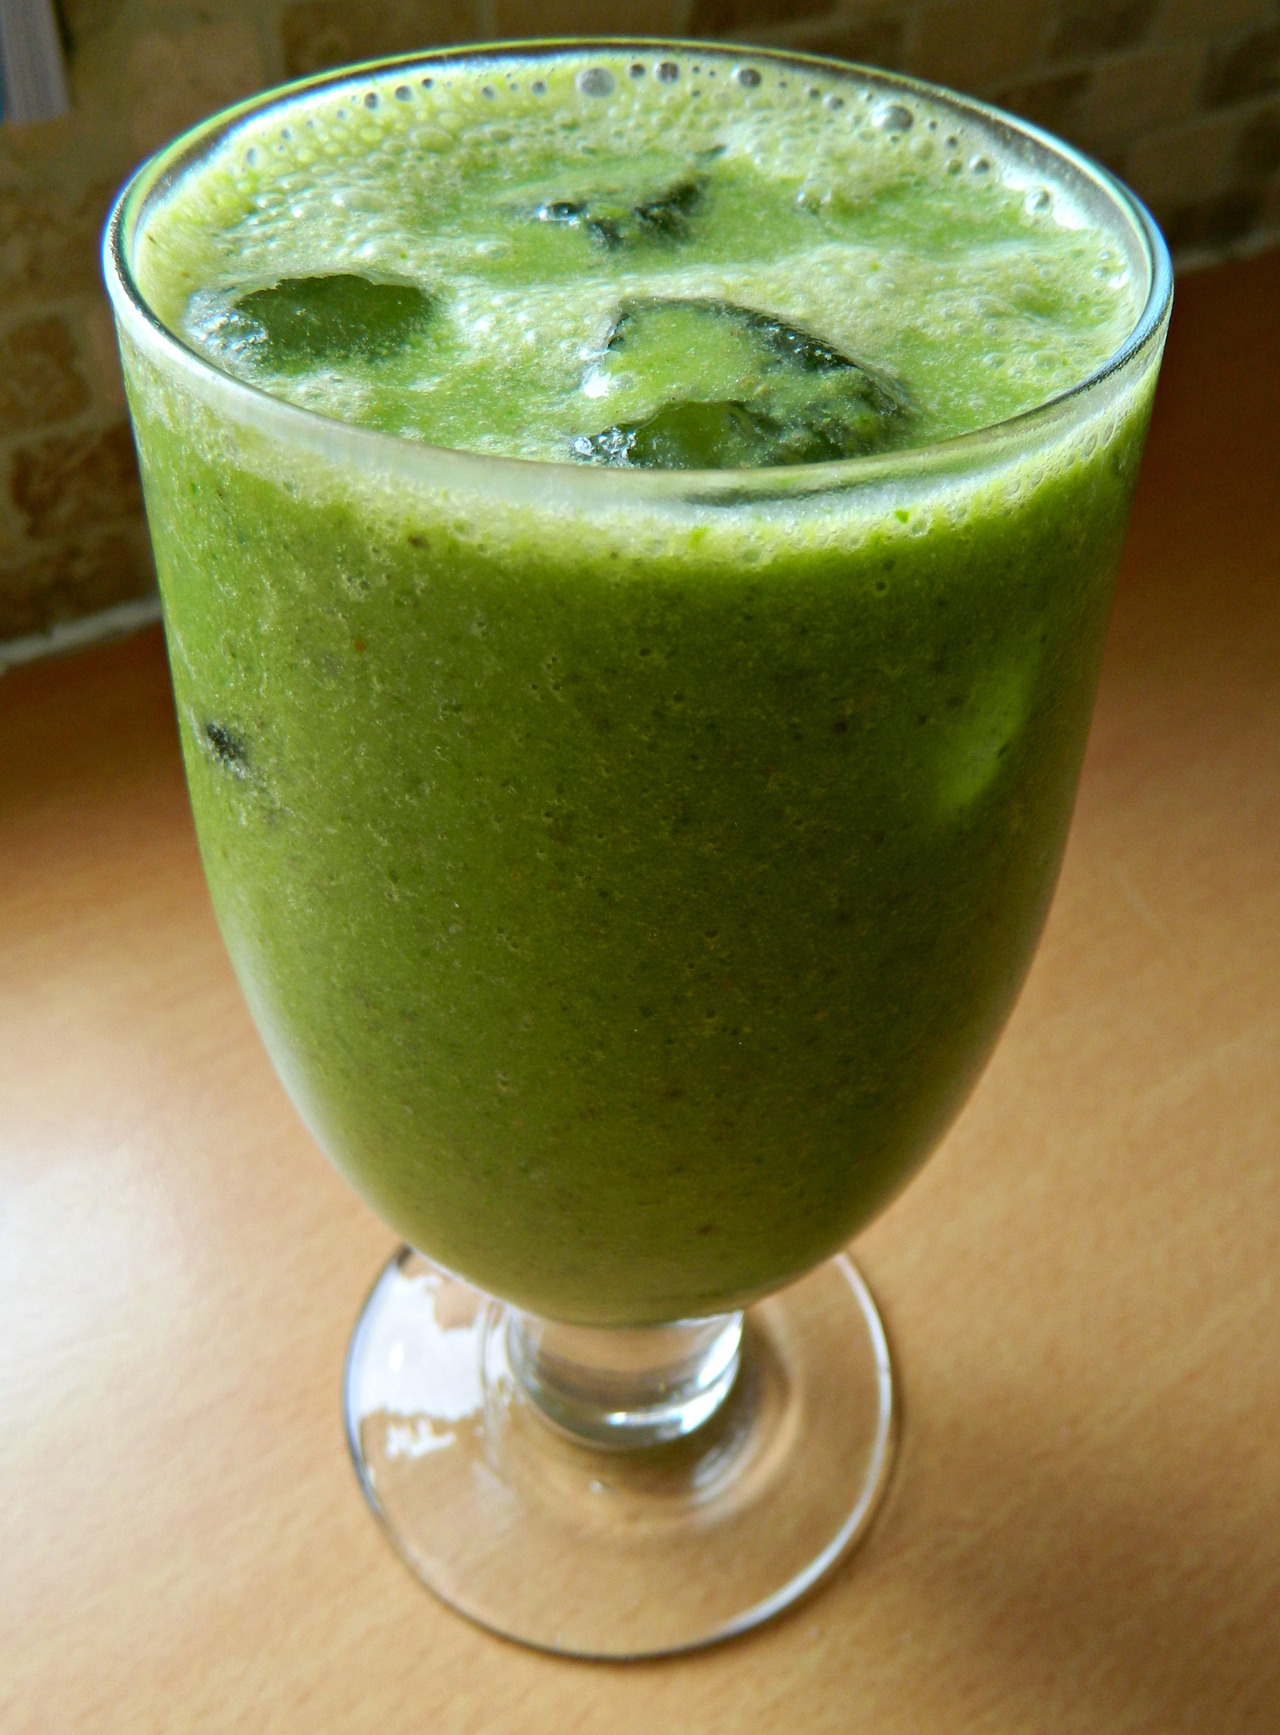 My favourite green smoothie - 1 ripe banana, 1 date (for natural sweetness!), several handfuls of spinach, a big splash of almond milk, 1/2 tbsp natural peanut butter and a tbsp or so of chia seeds all poured over lots of ice and drunk with a straw. Maybe I'll add some raspberry jam next time and it'll taste like a PBJ smoothie…